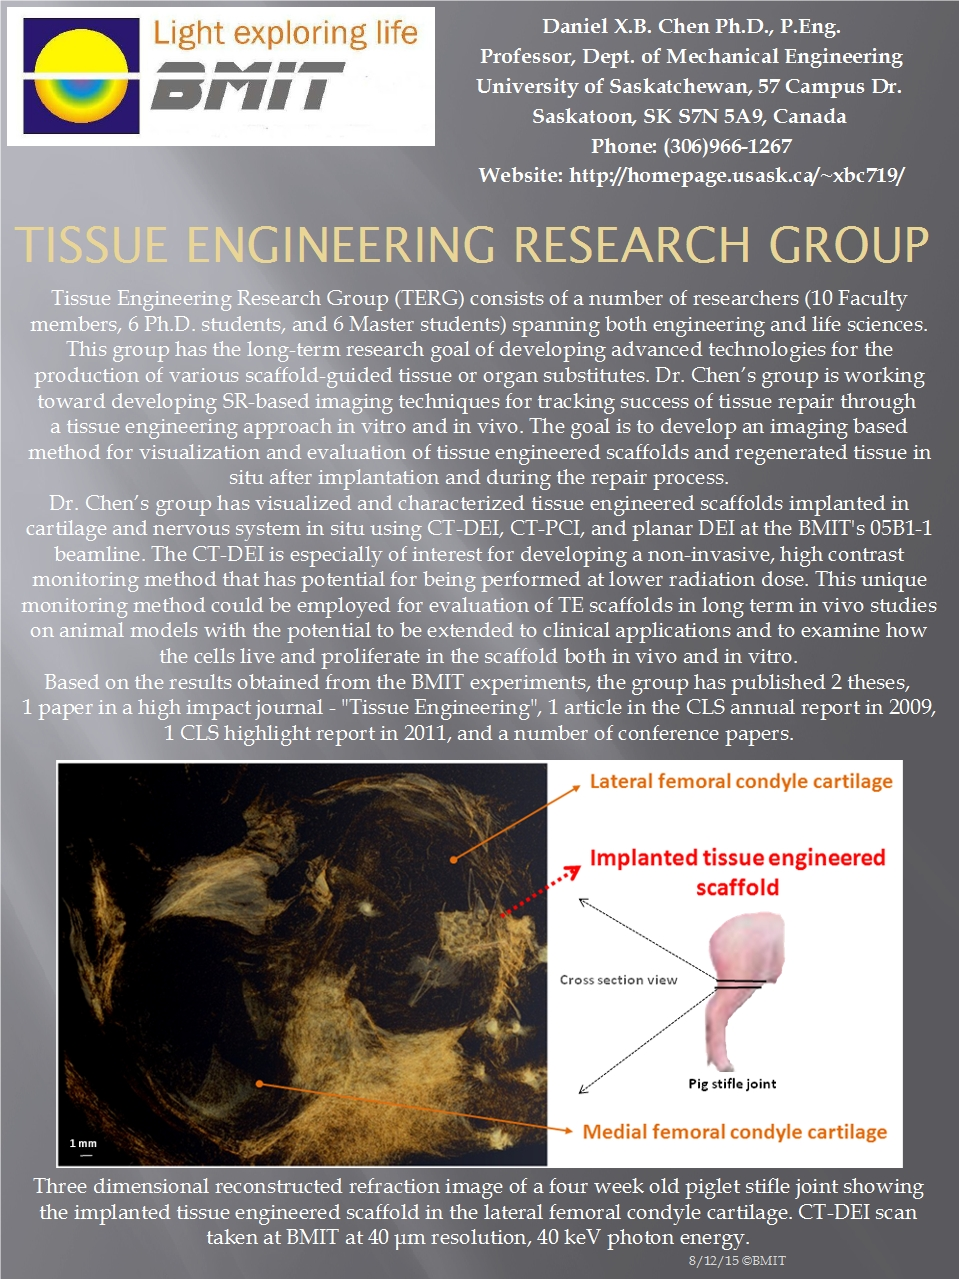 Tissue Engineering Research Group Image